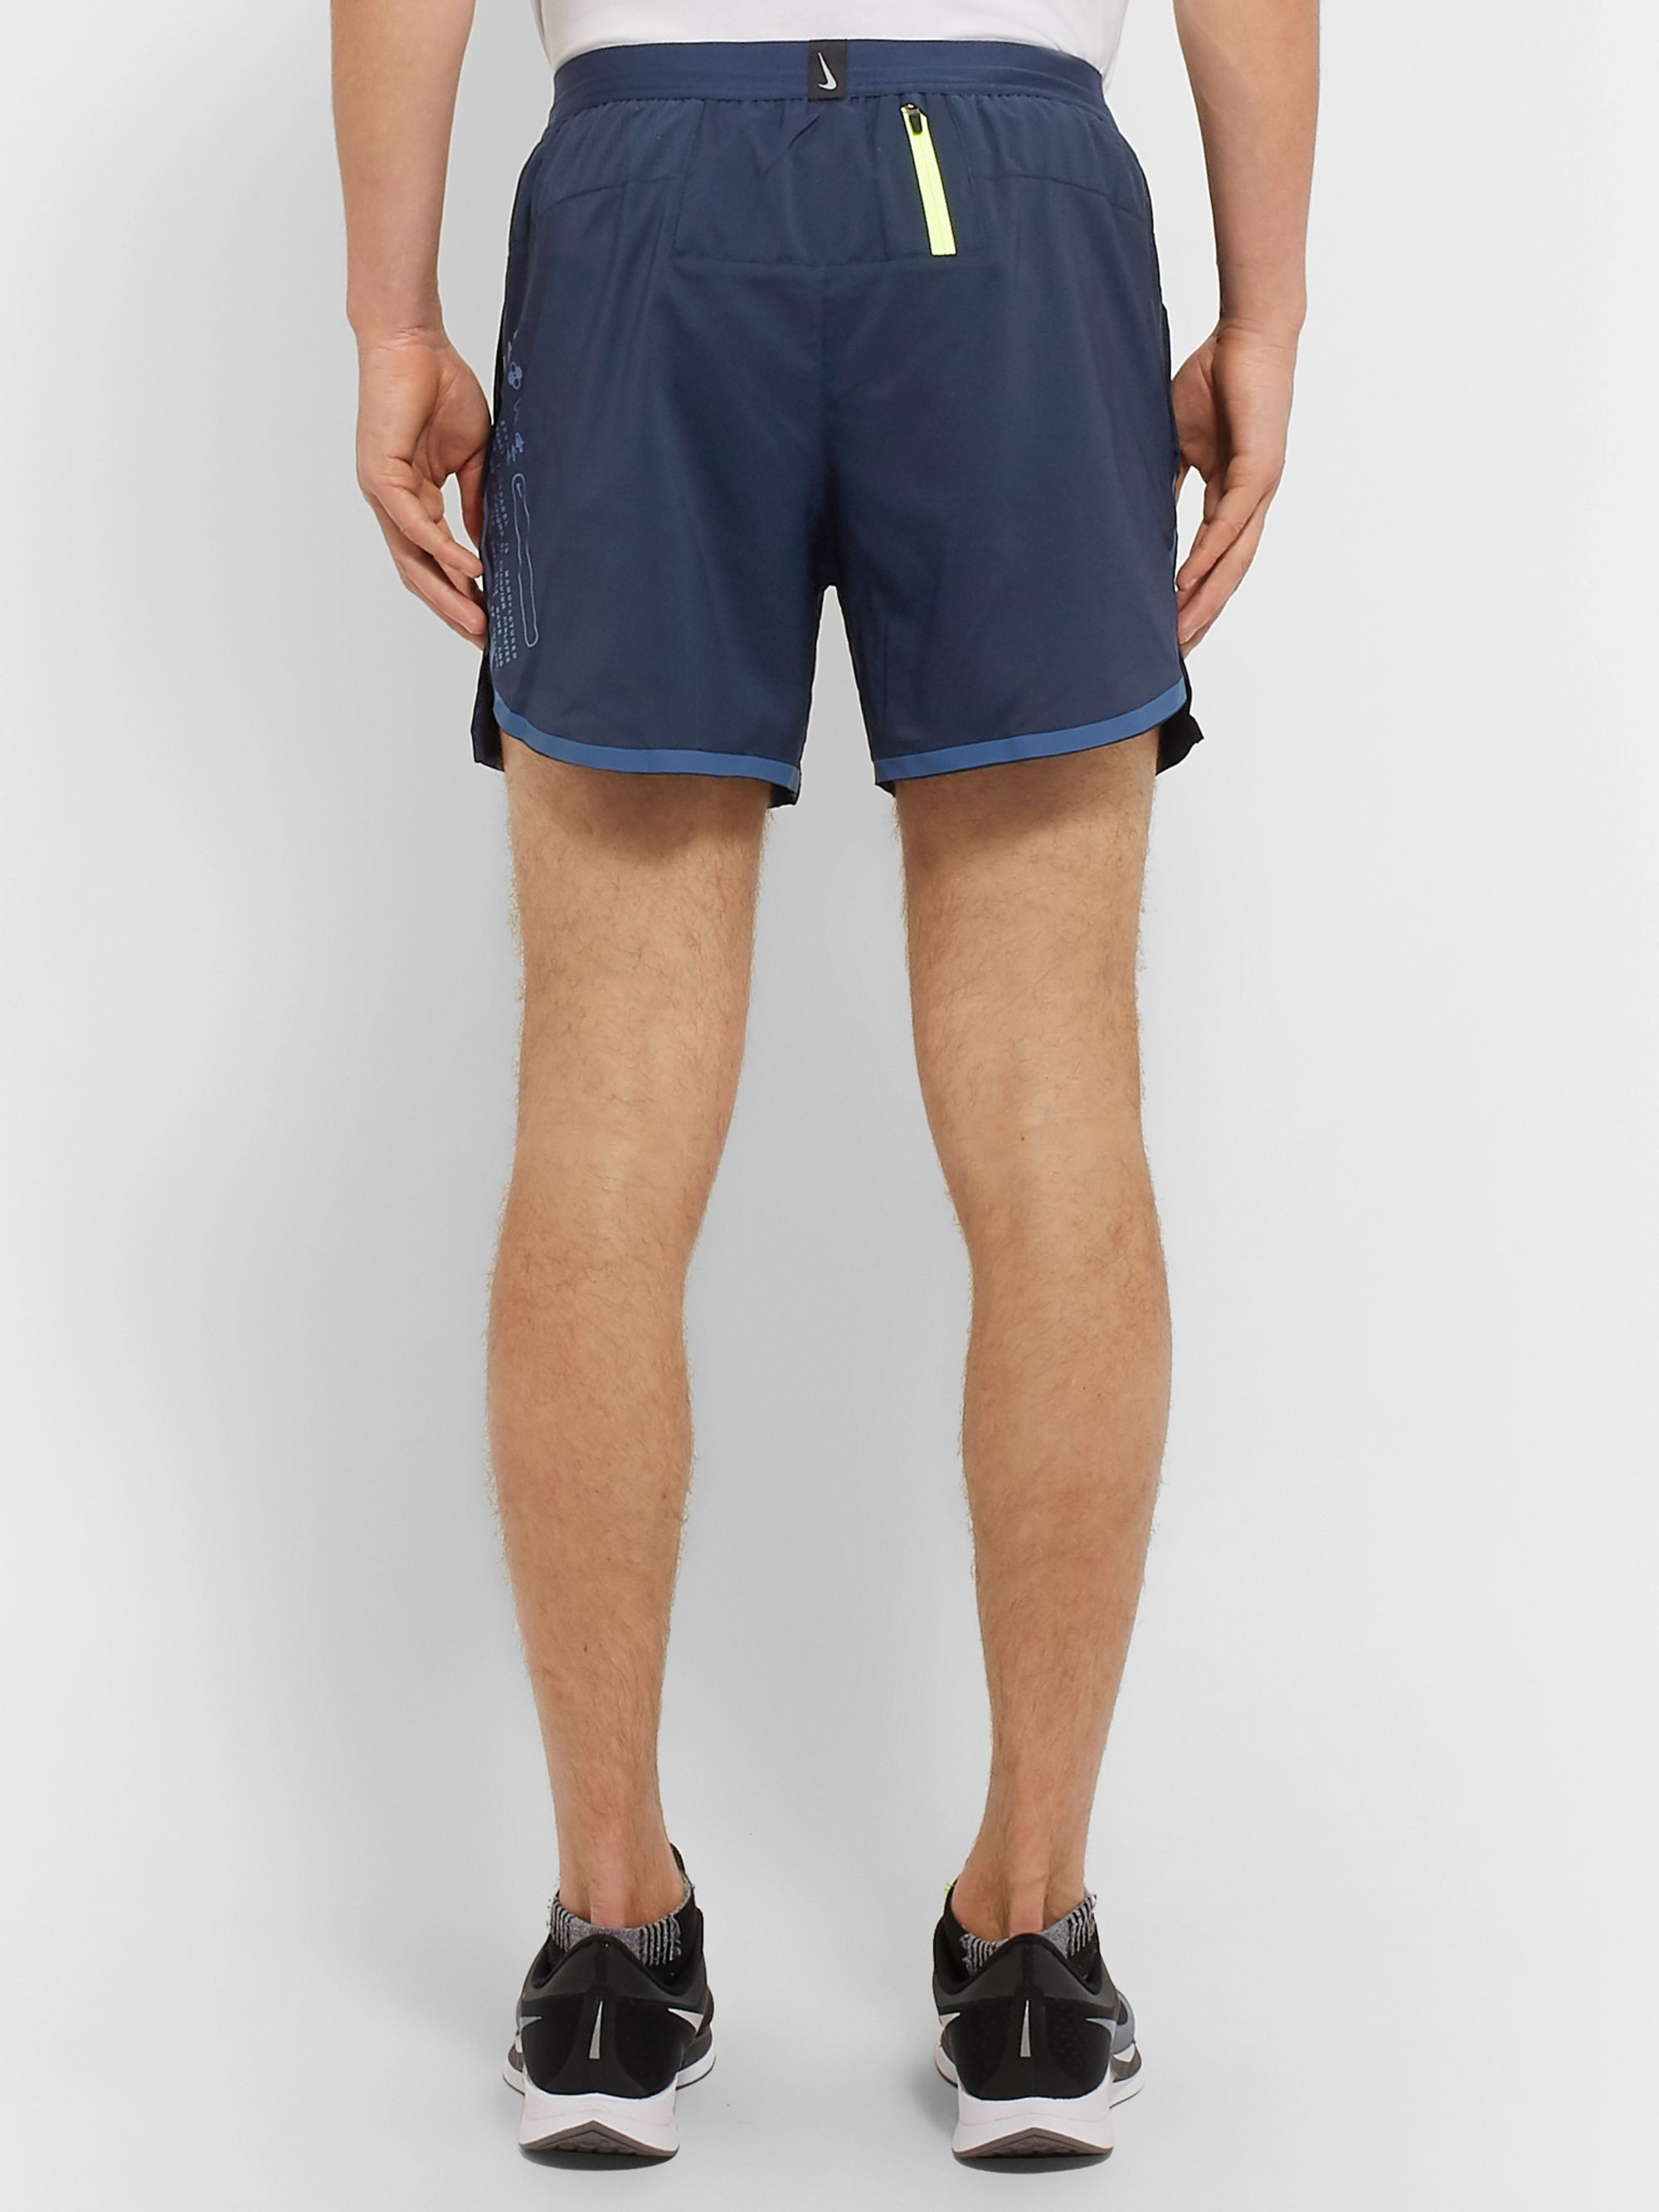 Nike Running Air Flex Stride Drawstring Shorts